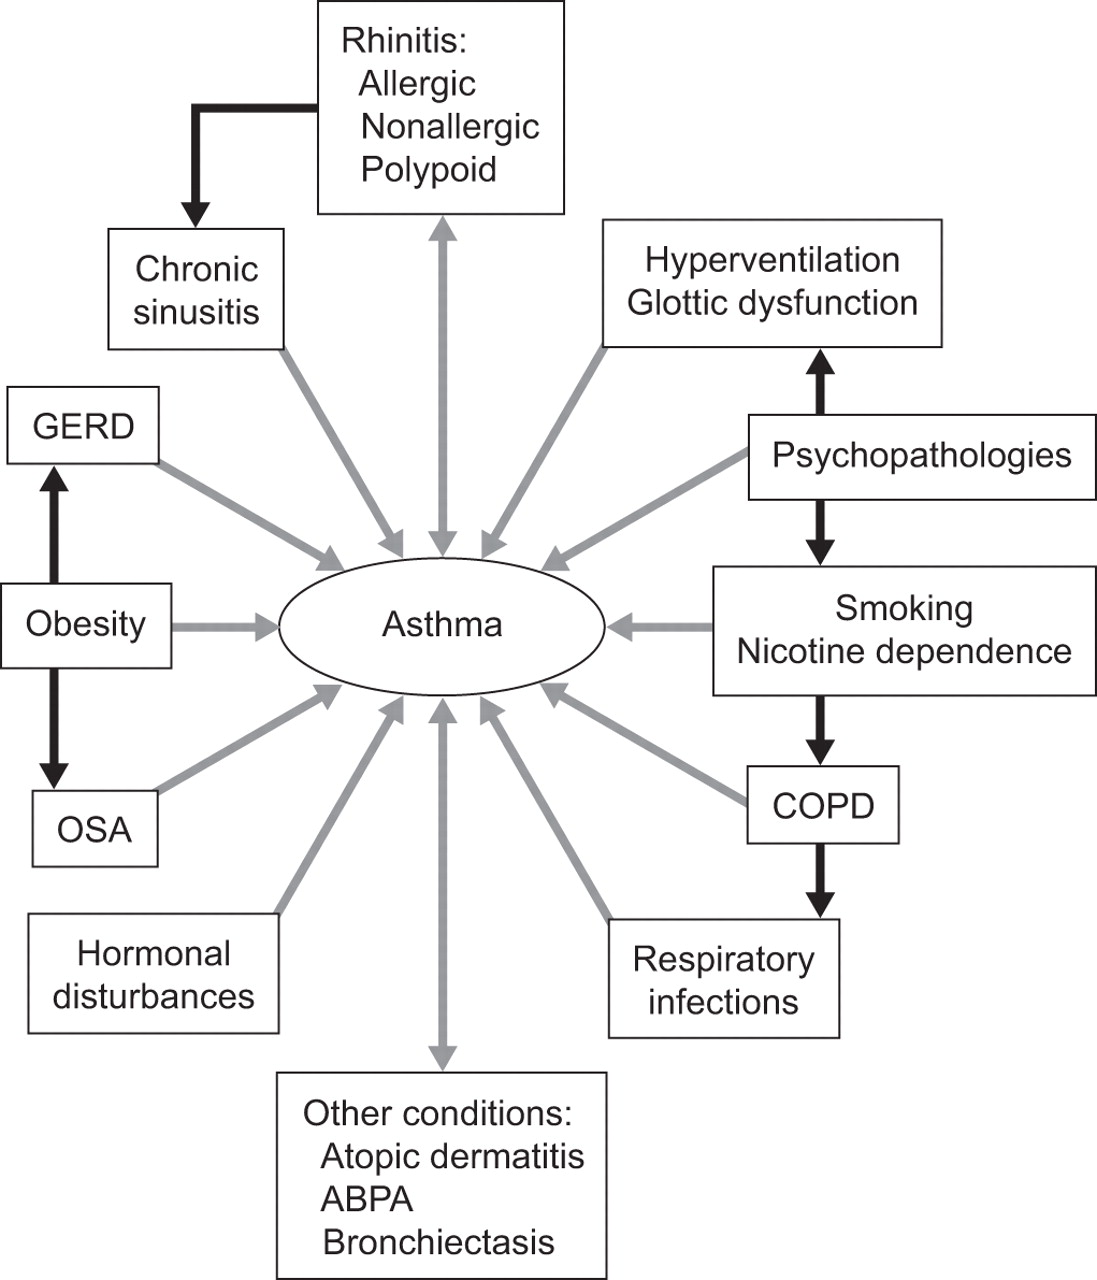 Forum on this topic: Hormone May Play a Role in Asthma-Obesity , hormone-may-play-a-role-in-asthma-obesity/